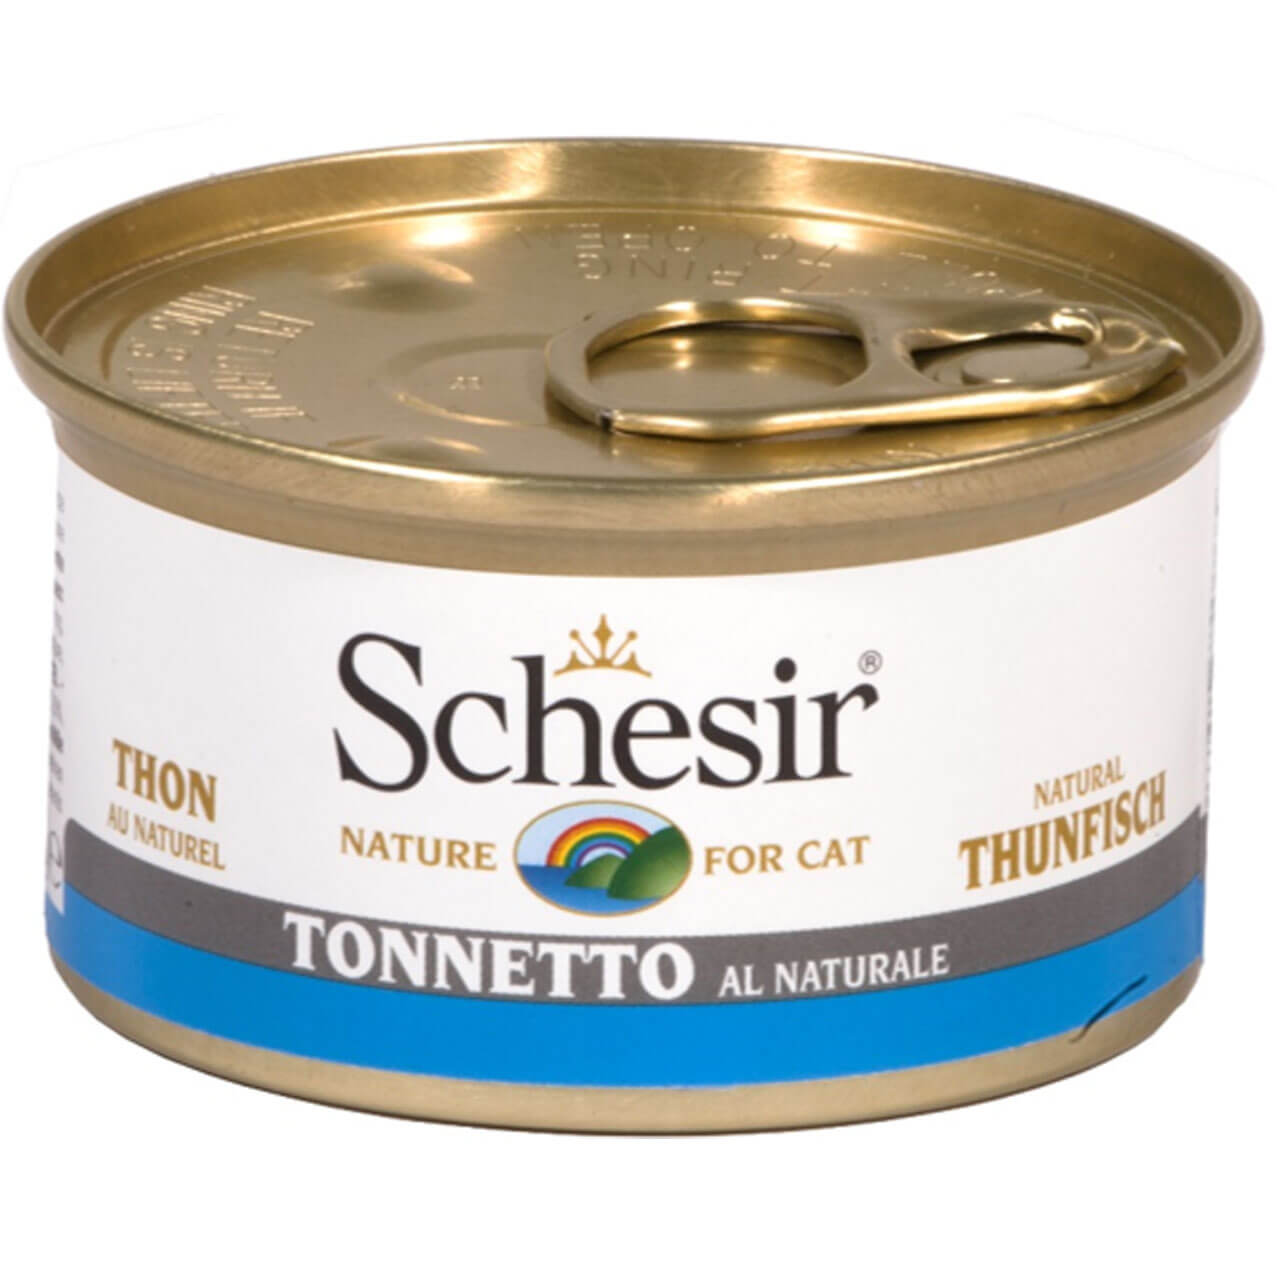 Natural Thunfisch